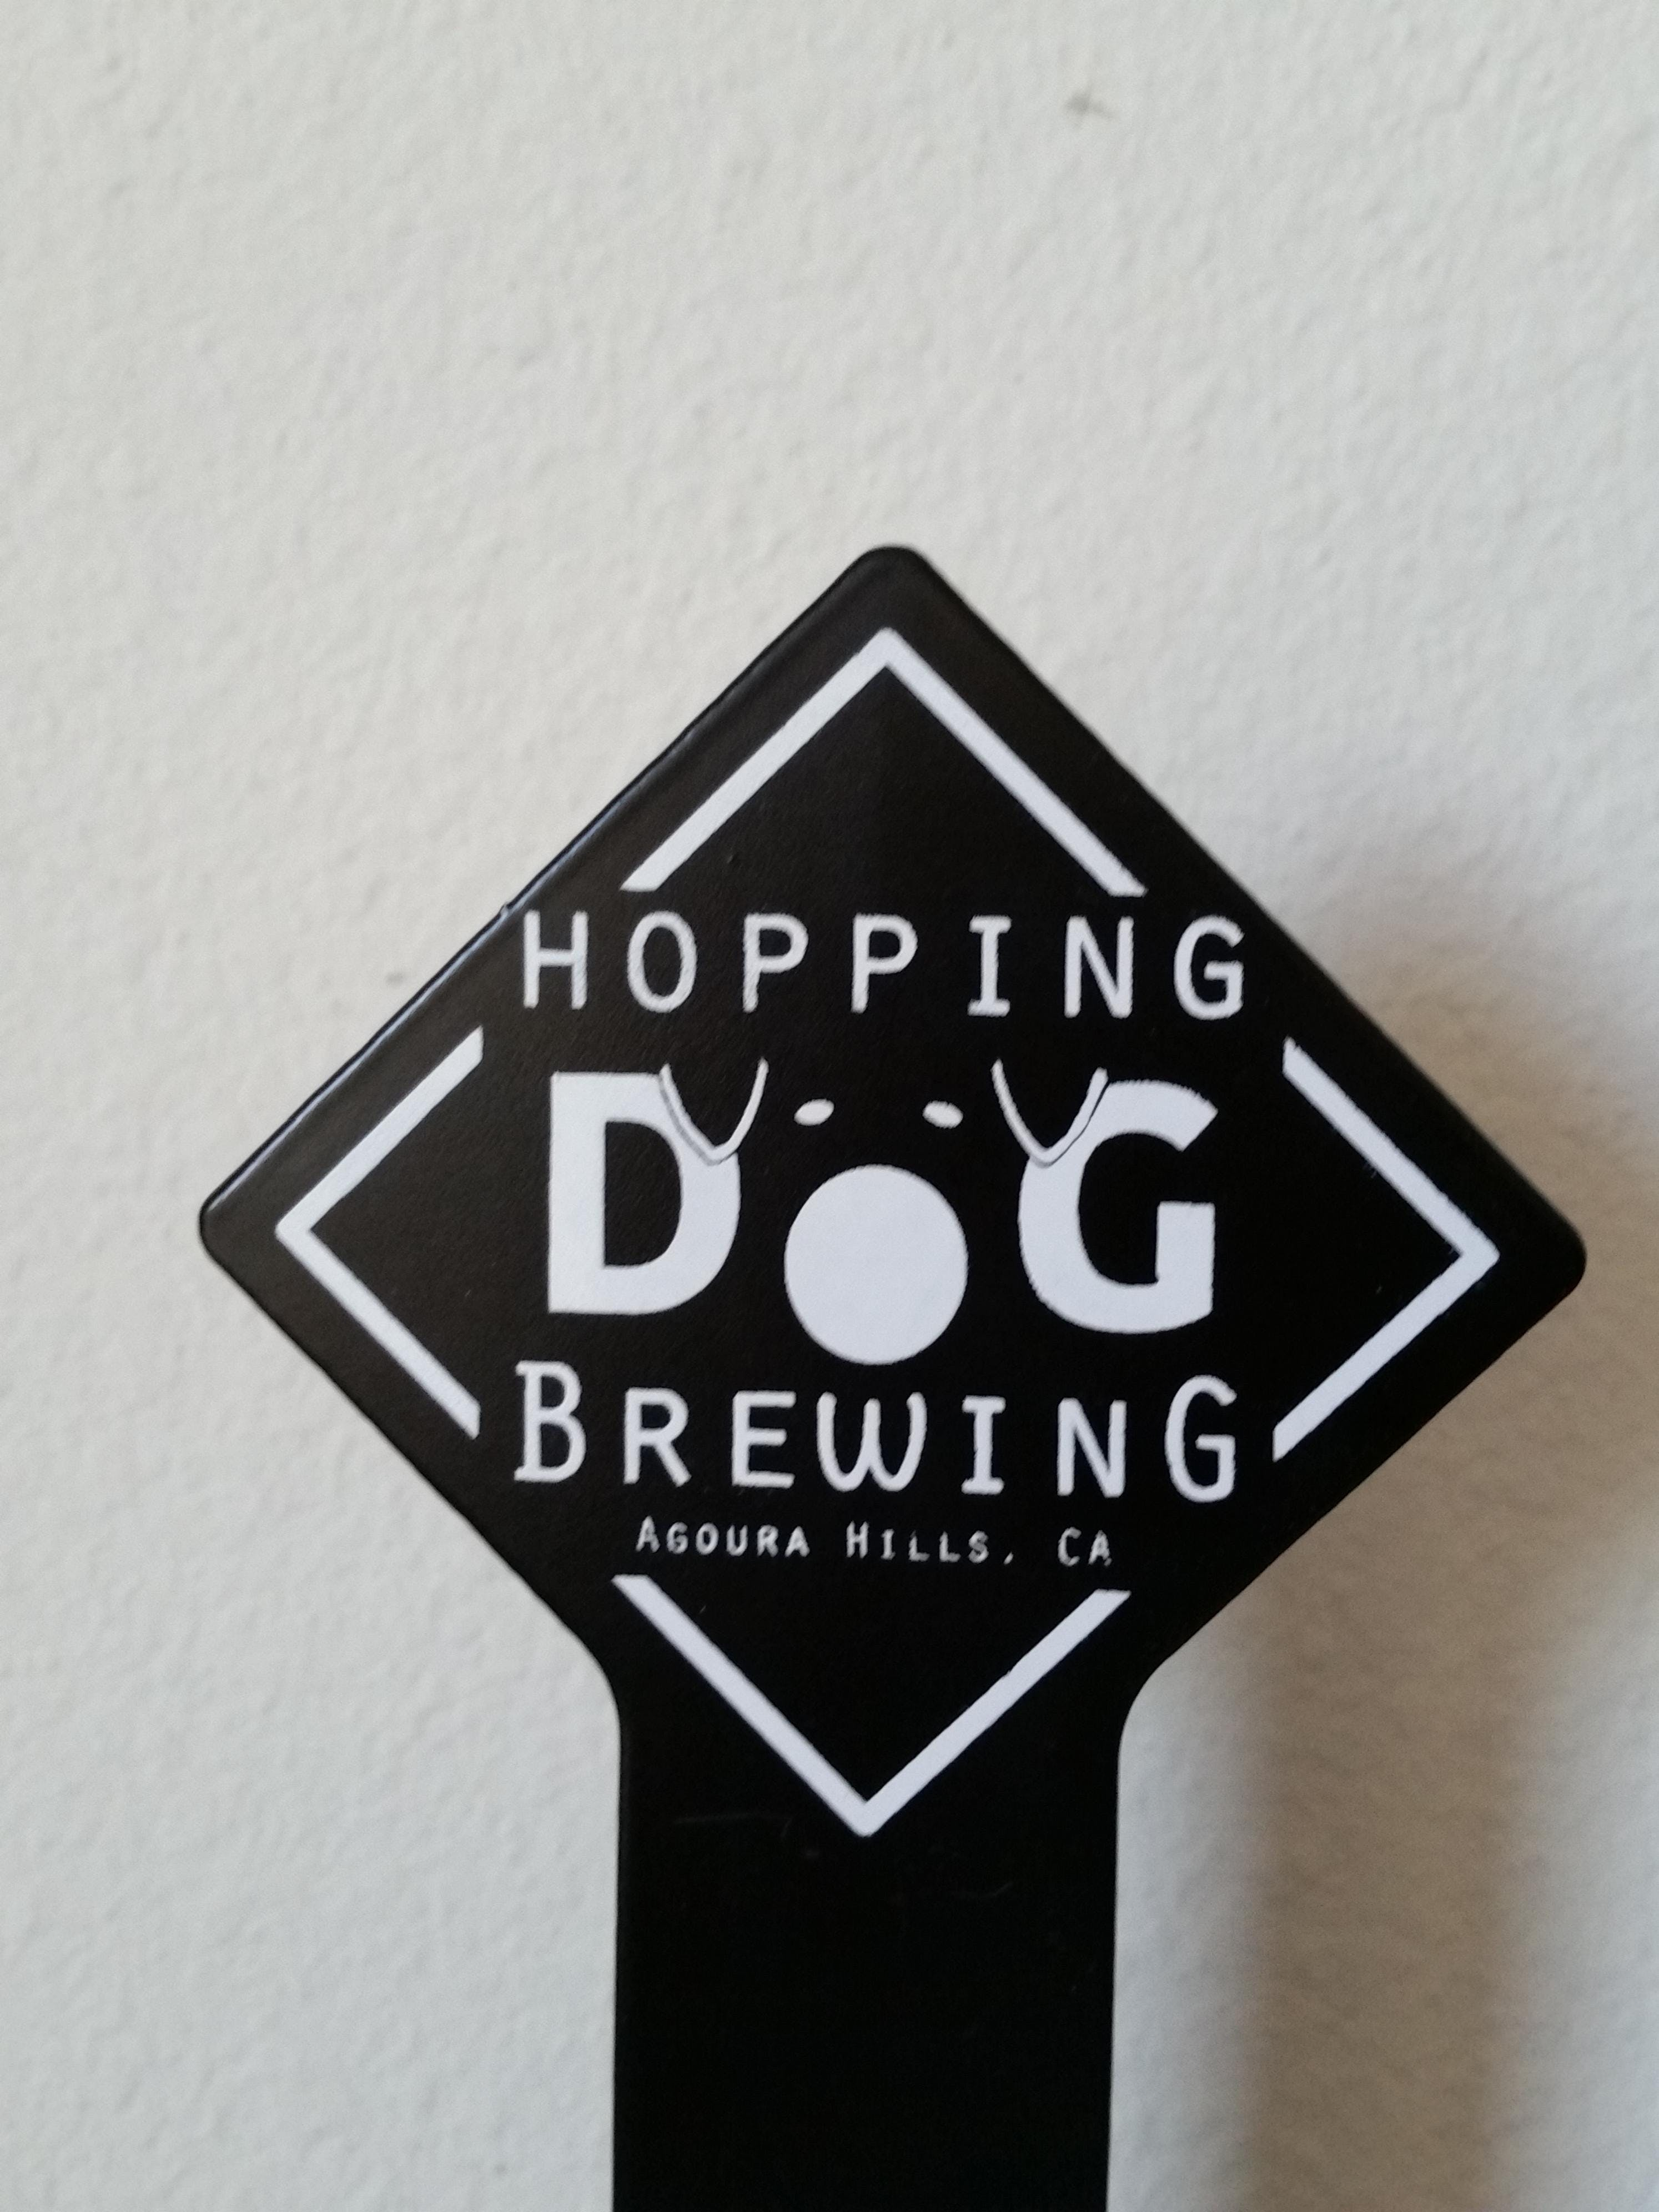 Tap Handles for Hopping Dog BRewing Co. Agoura Hills, Ca. - Aluminum Tap Handles - sold by Brewlicious Beer